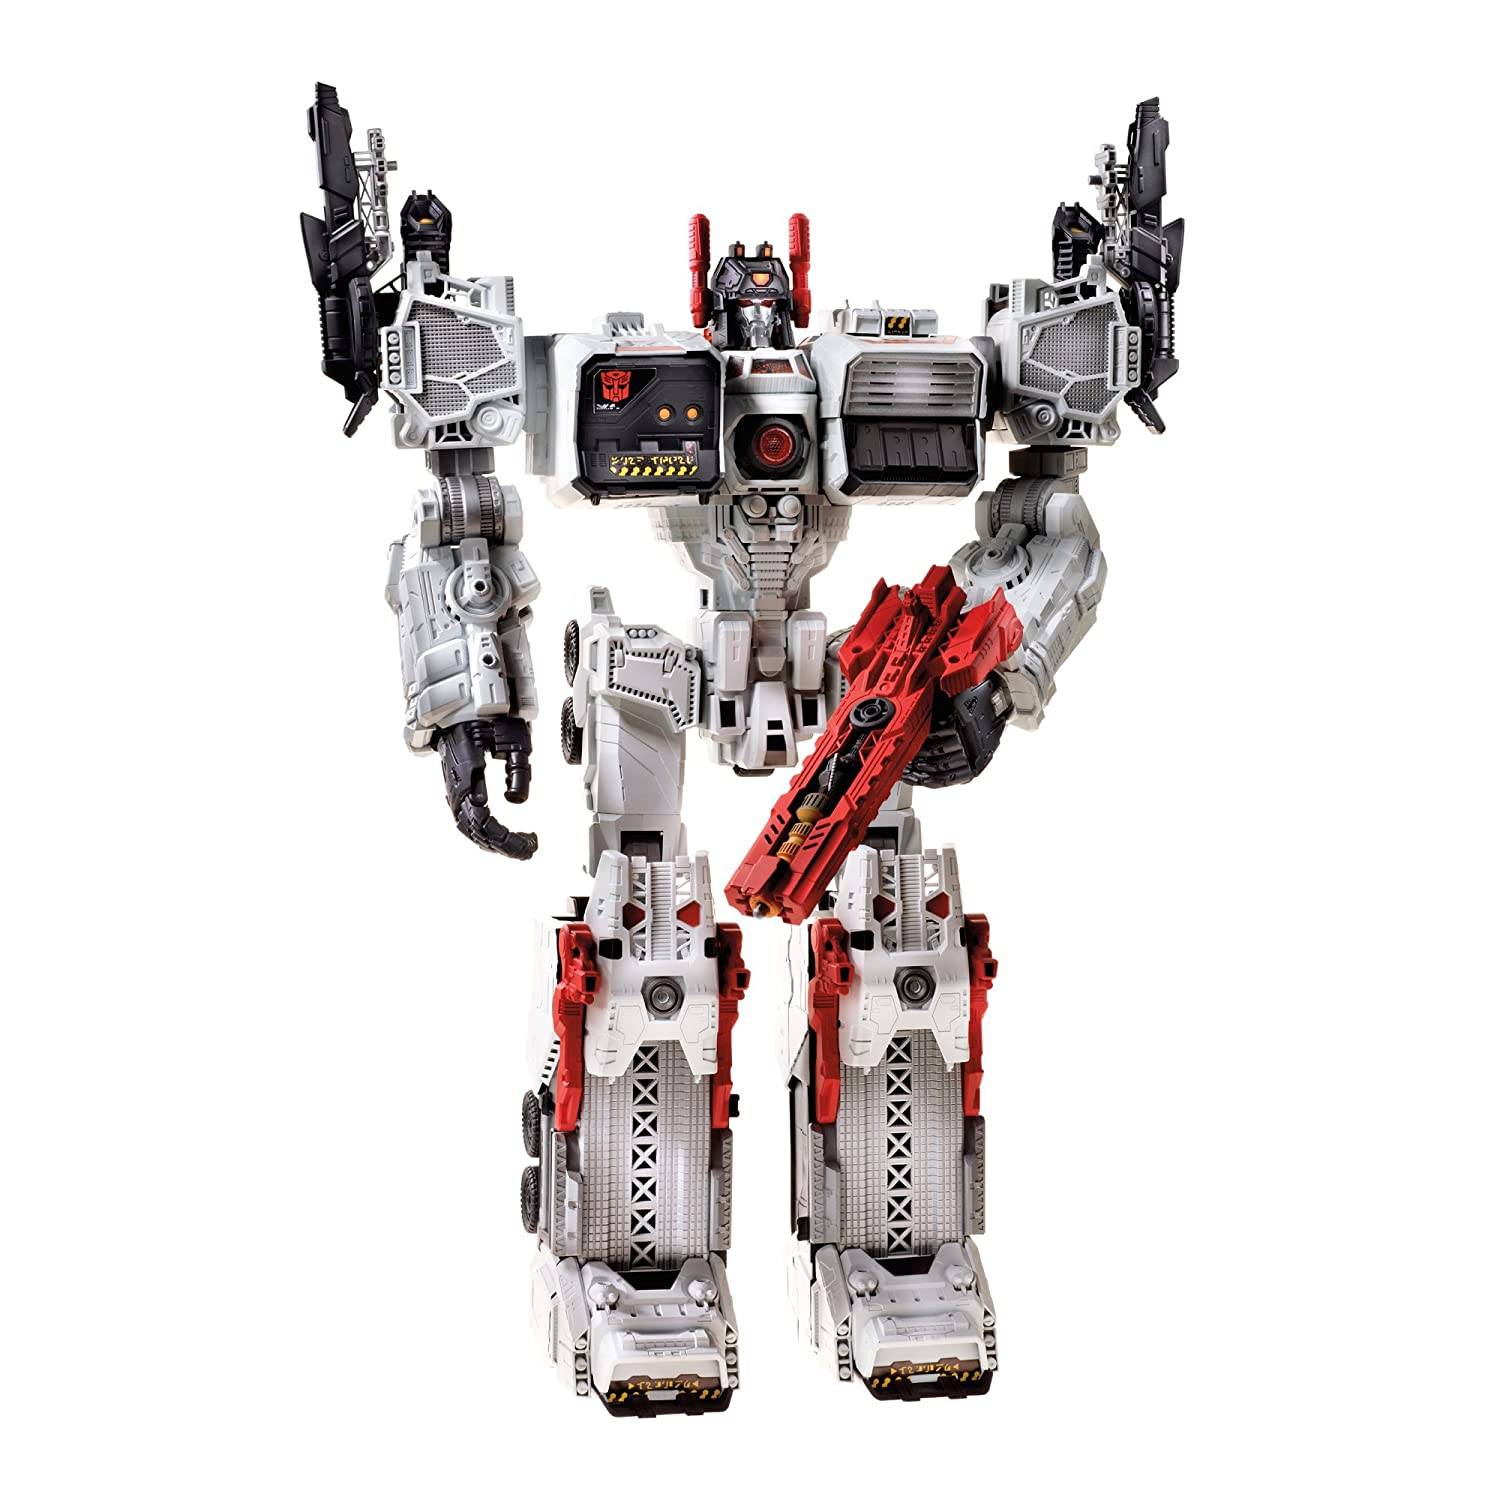 Transformers Generations Titan Class Metroplex with Autobot Scamper Figure